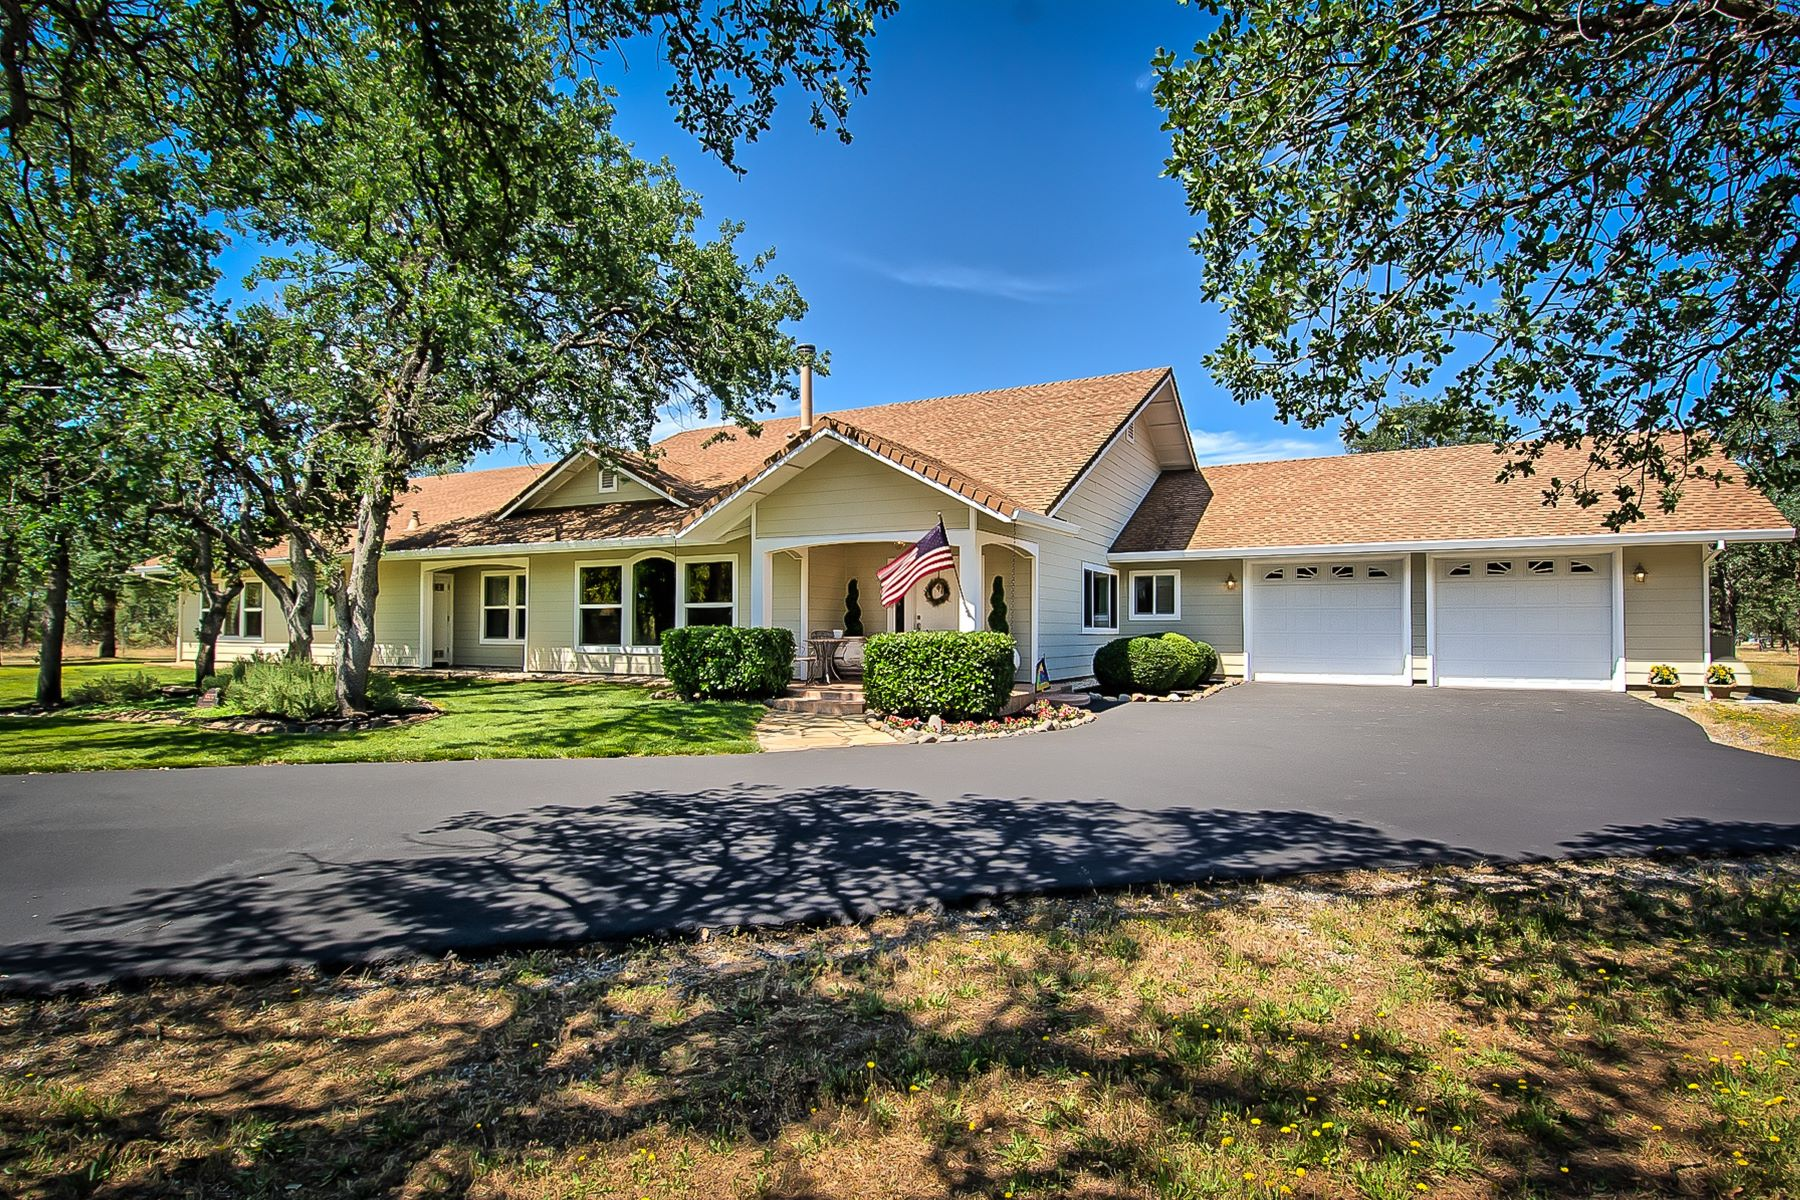 Single Family Homes for Sale at This Beautiful Place Has It All. 8809 Love Cir Lane Palo Cedro, California 96073 United States